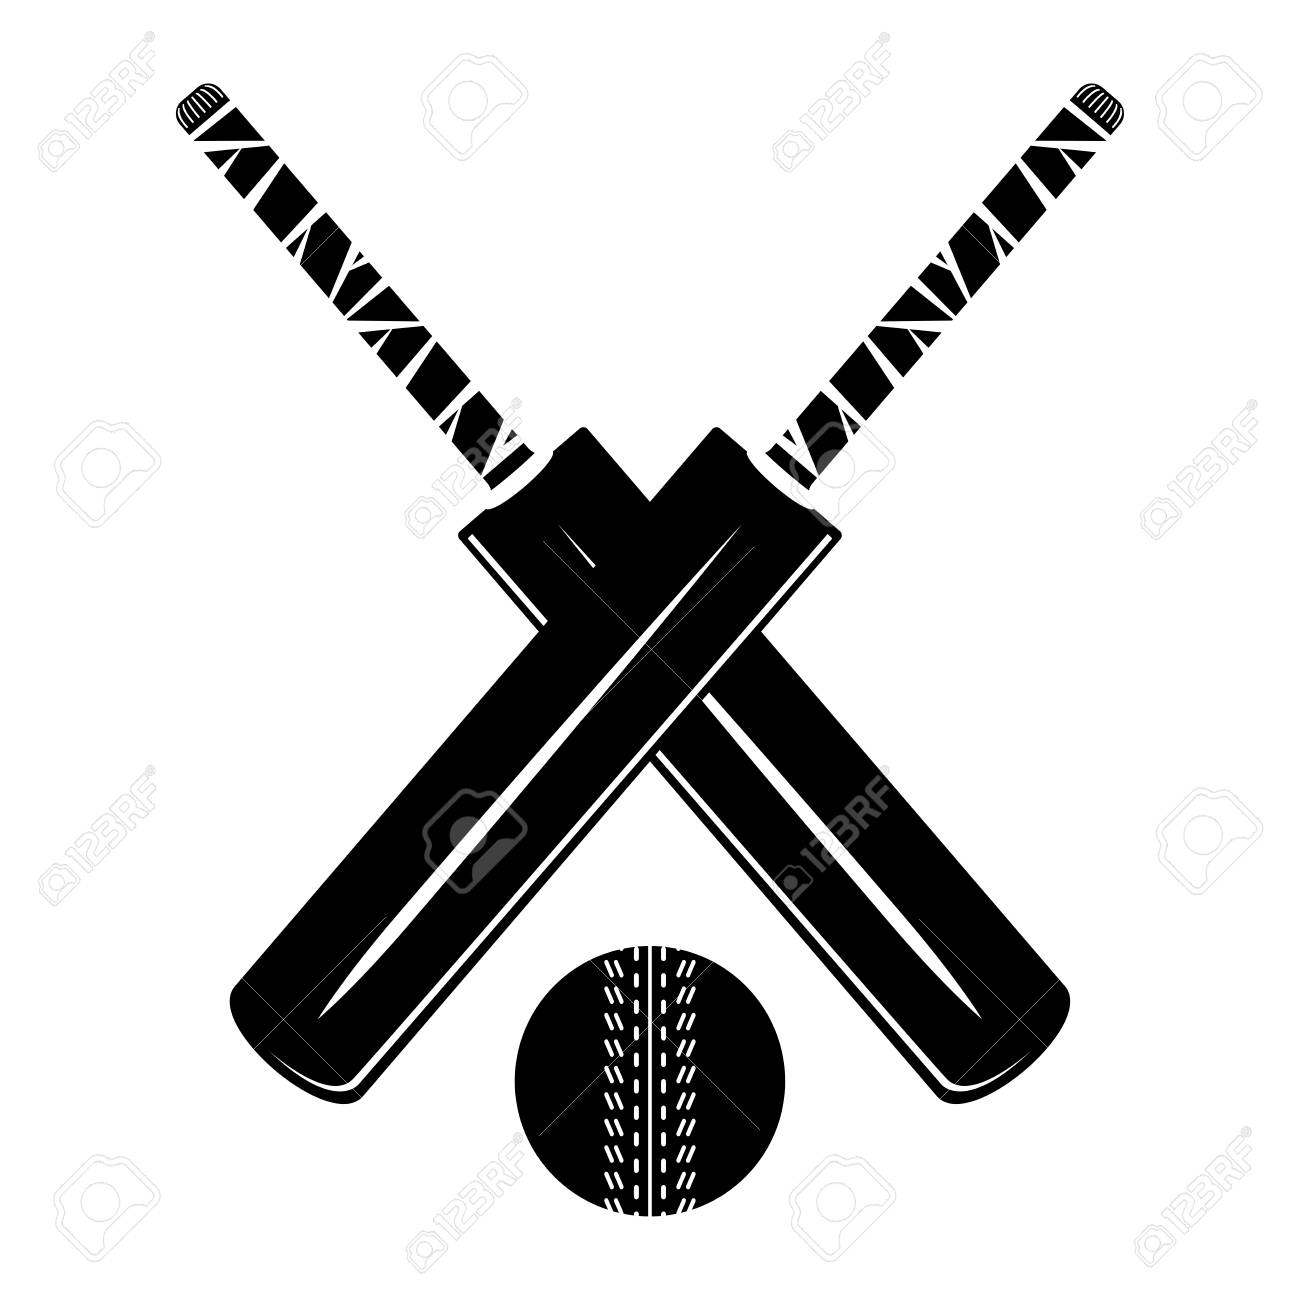 Isolated Cricket Bat And Ball On White Background Monochrome Royalty Free Cliparts Vectors And Stock Illustration Image 105413223